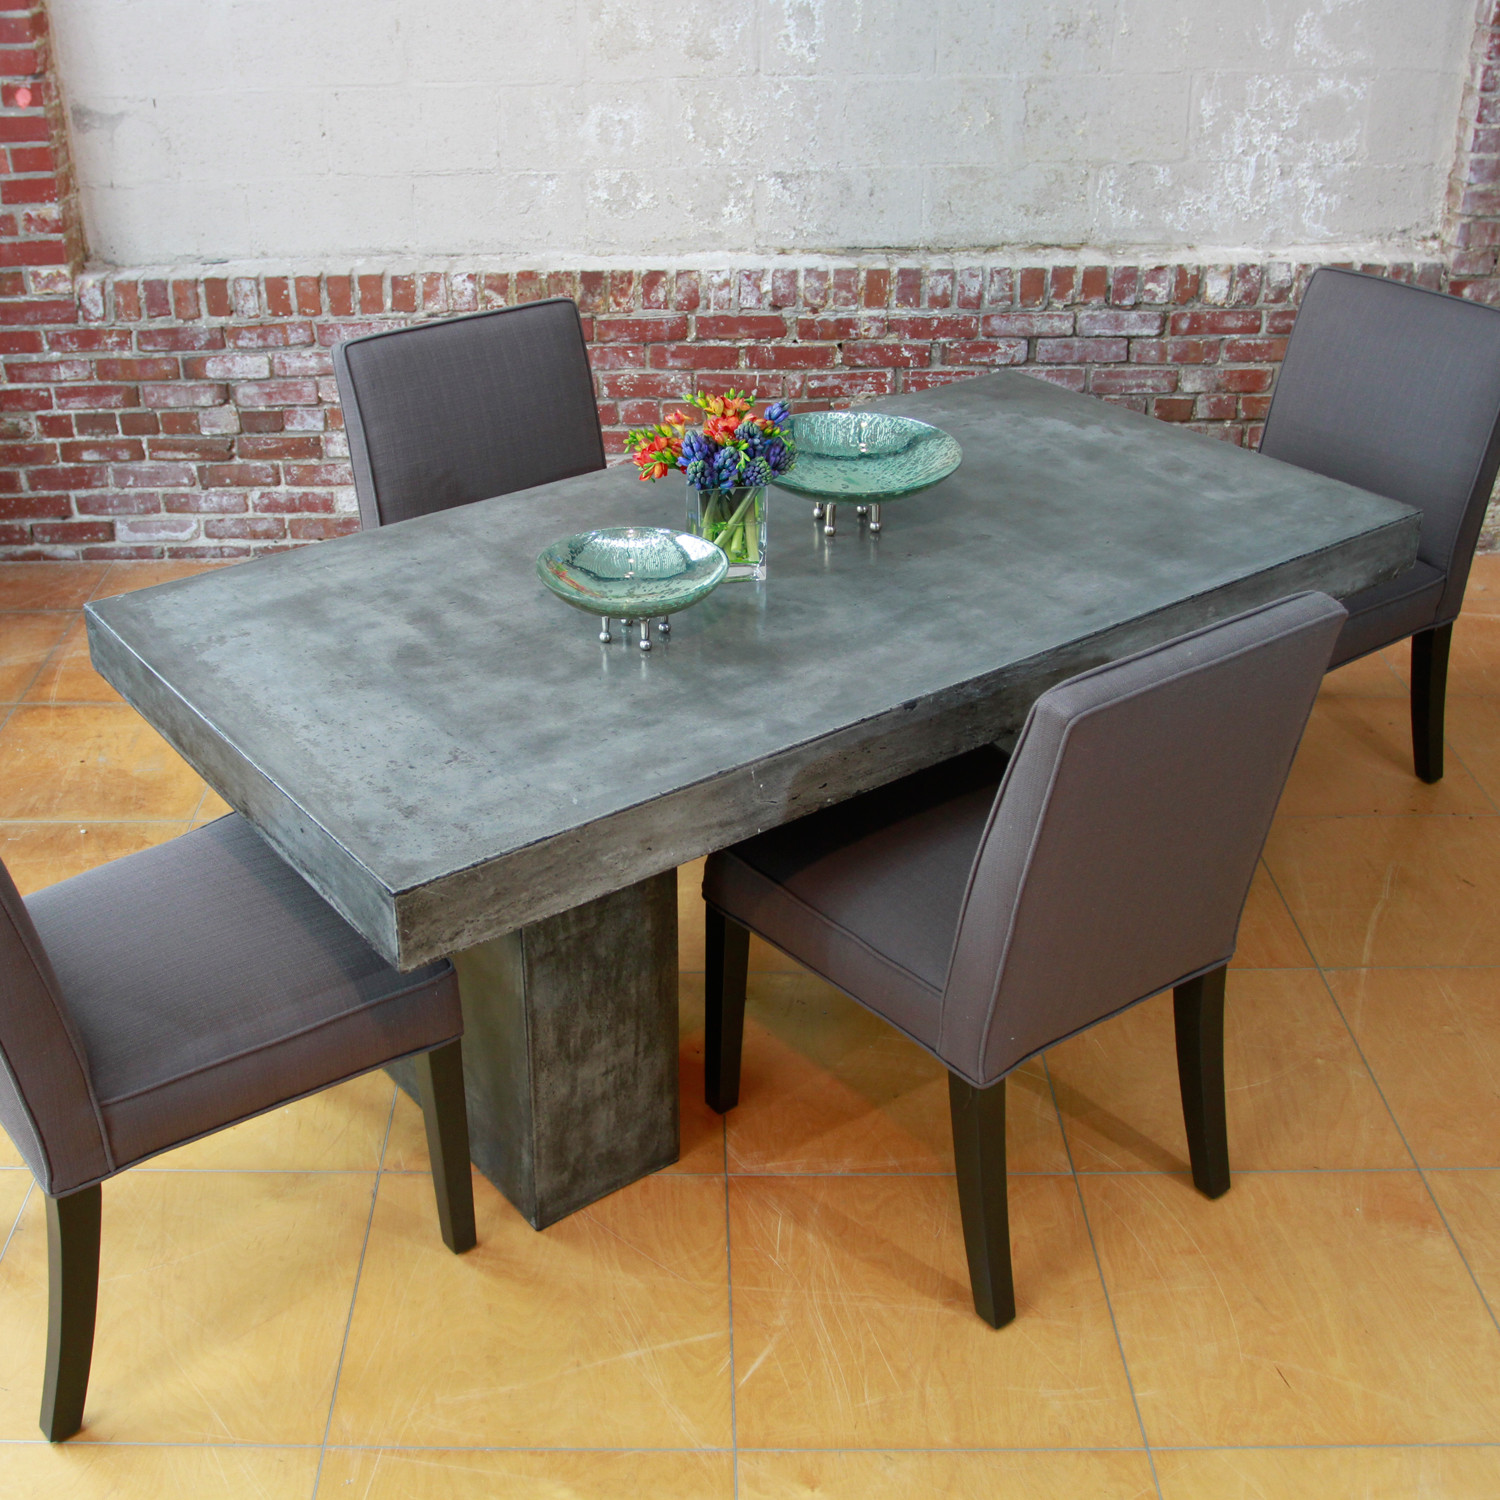 Elcor dining table 6 foot model mixx by urbia touch for Table 6 feet